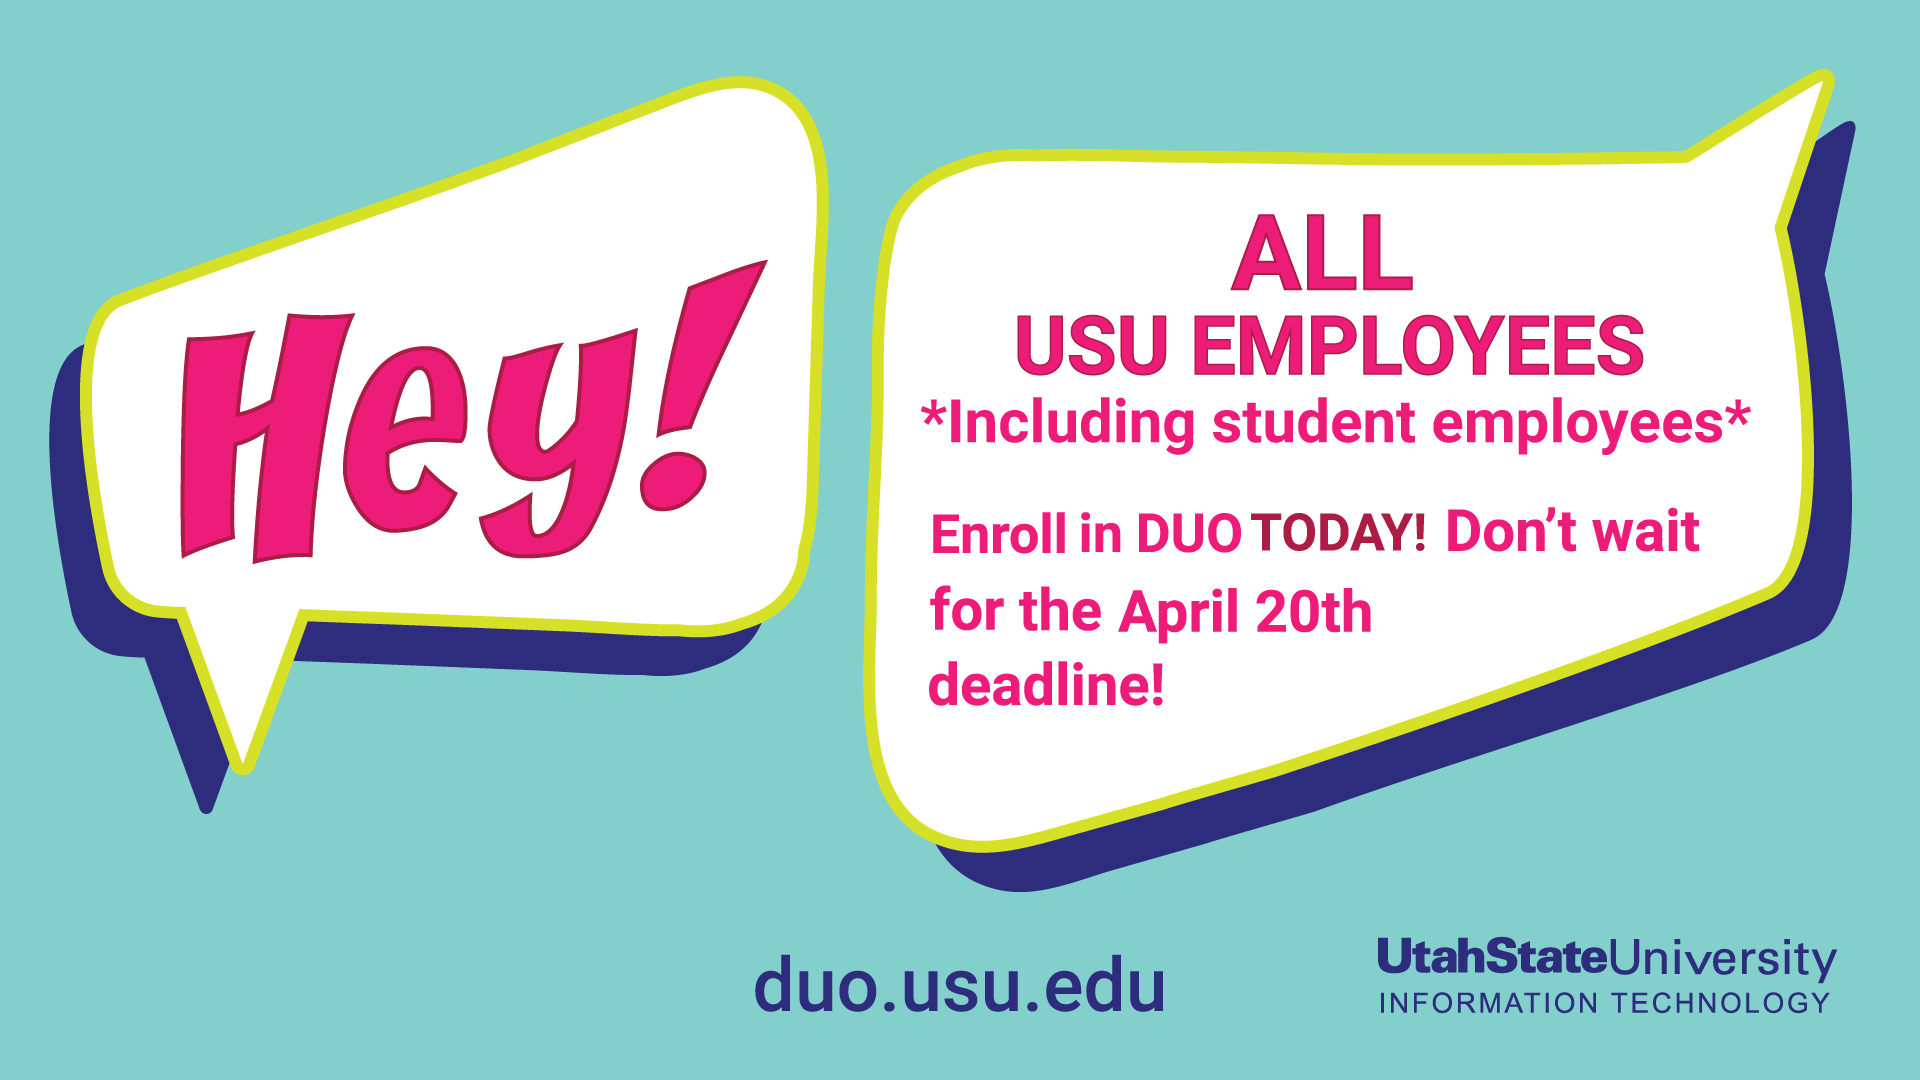 DUO for all employees deadline April 20, 2017